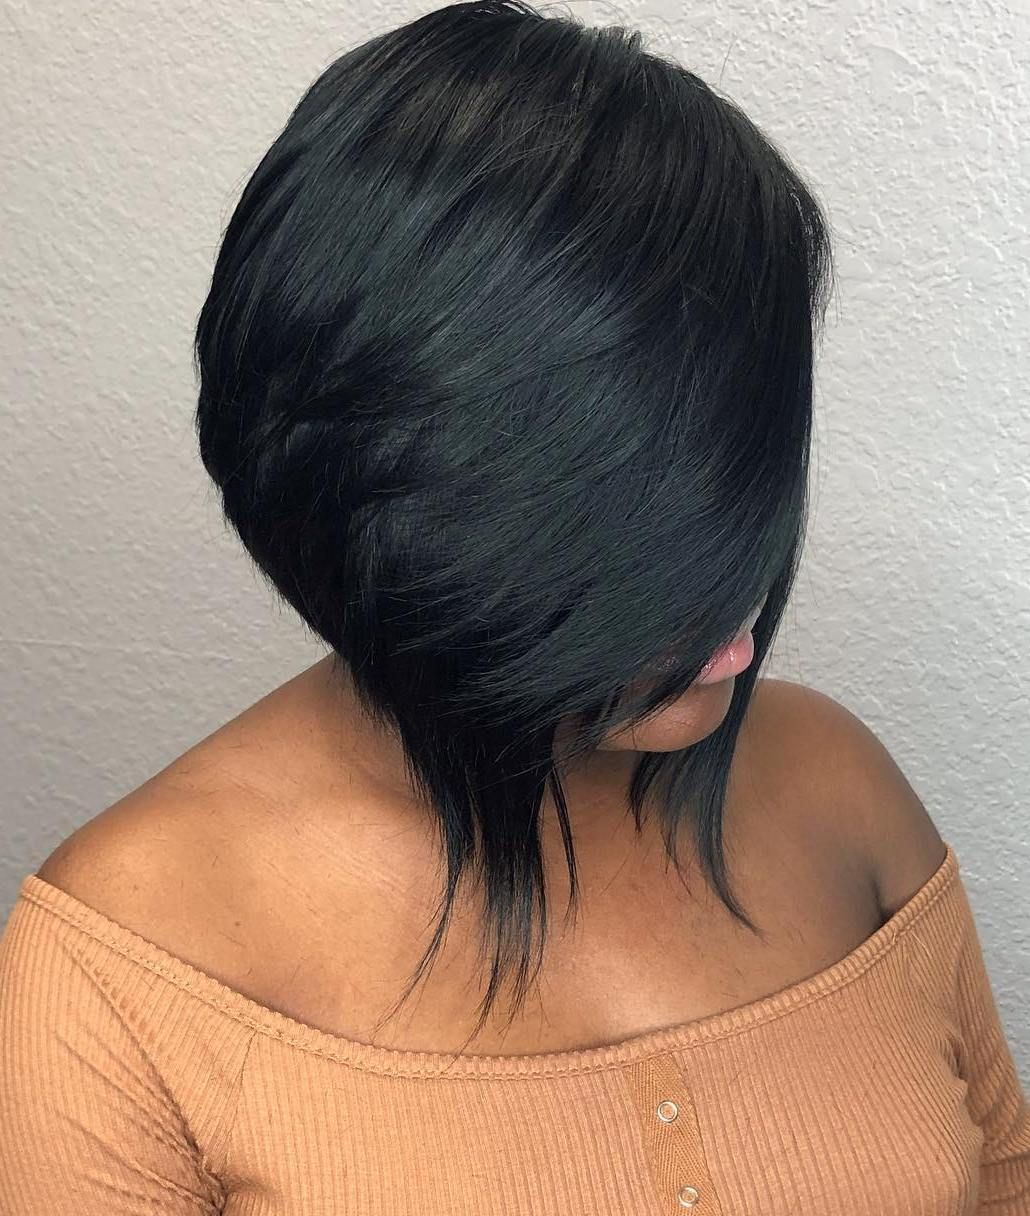 60 Showiest Bob Haircuts For Black Women In 2020 Bob Hairstyles